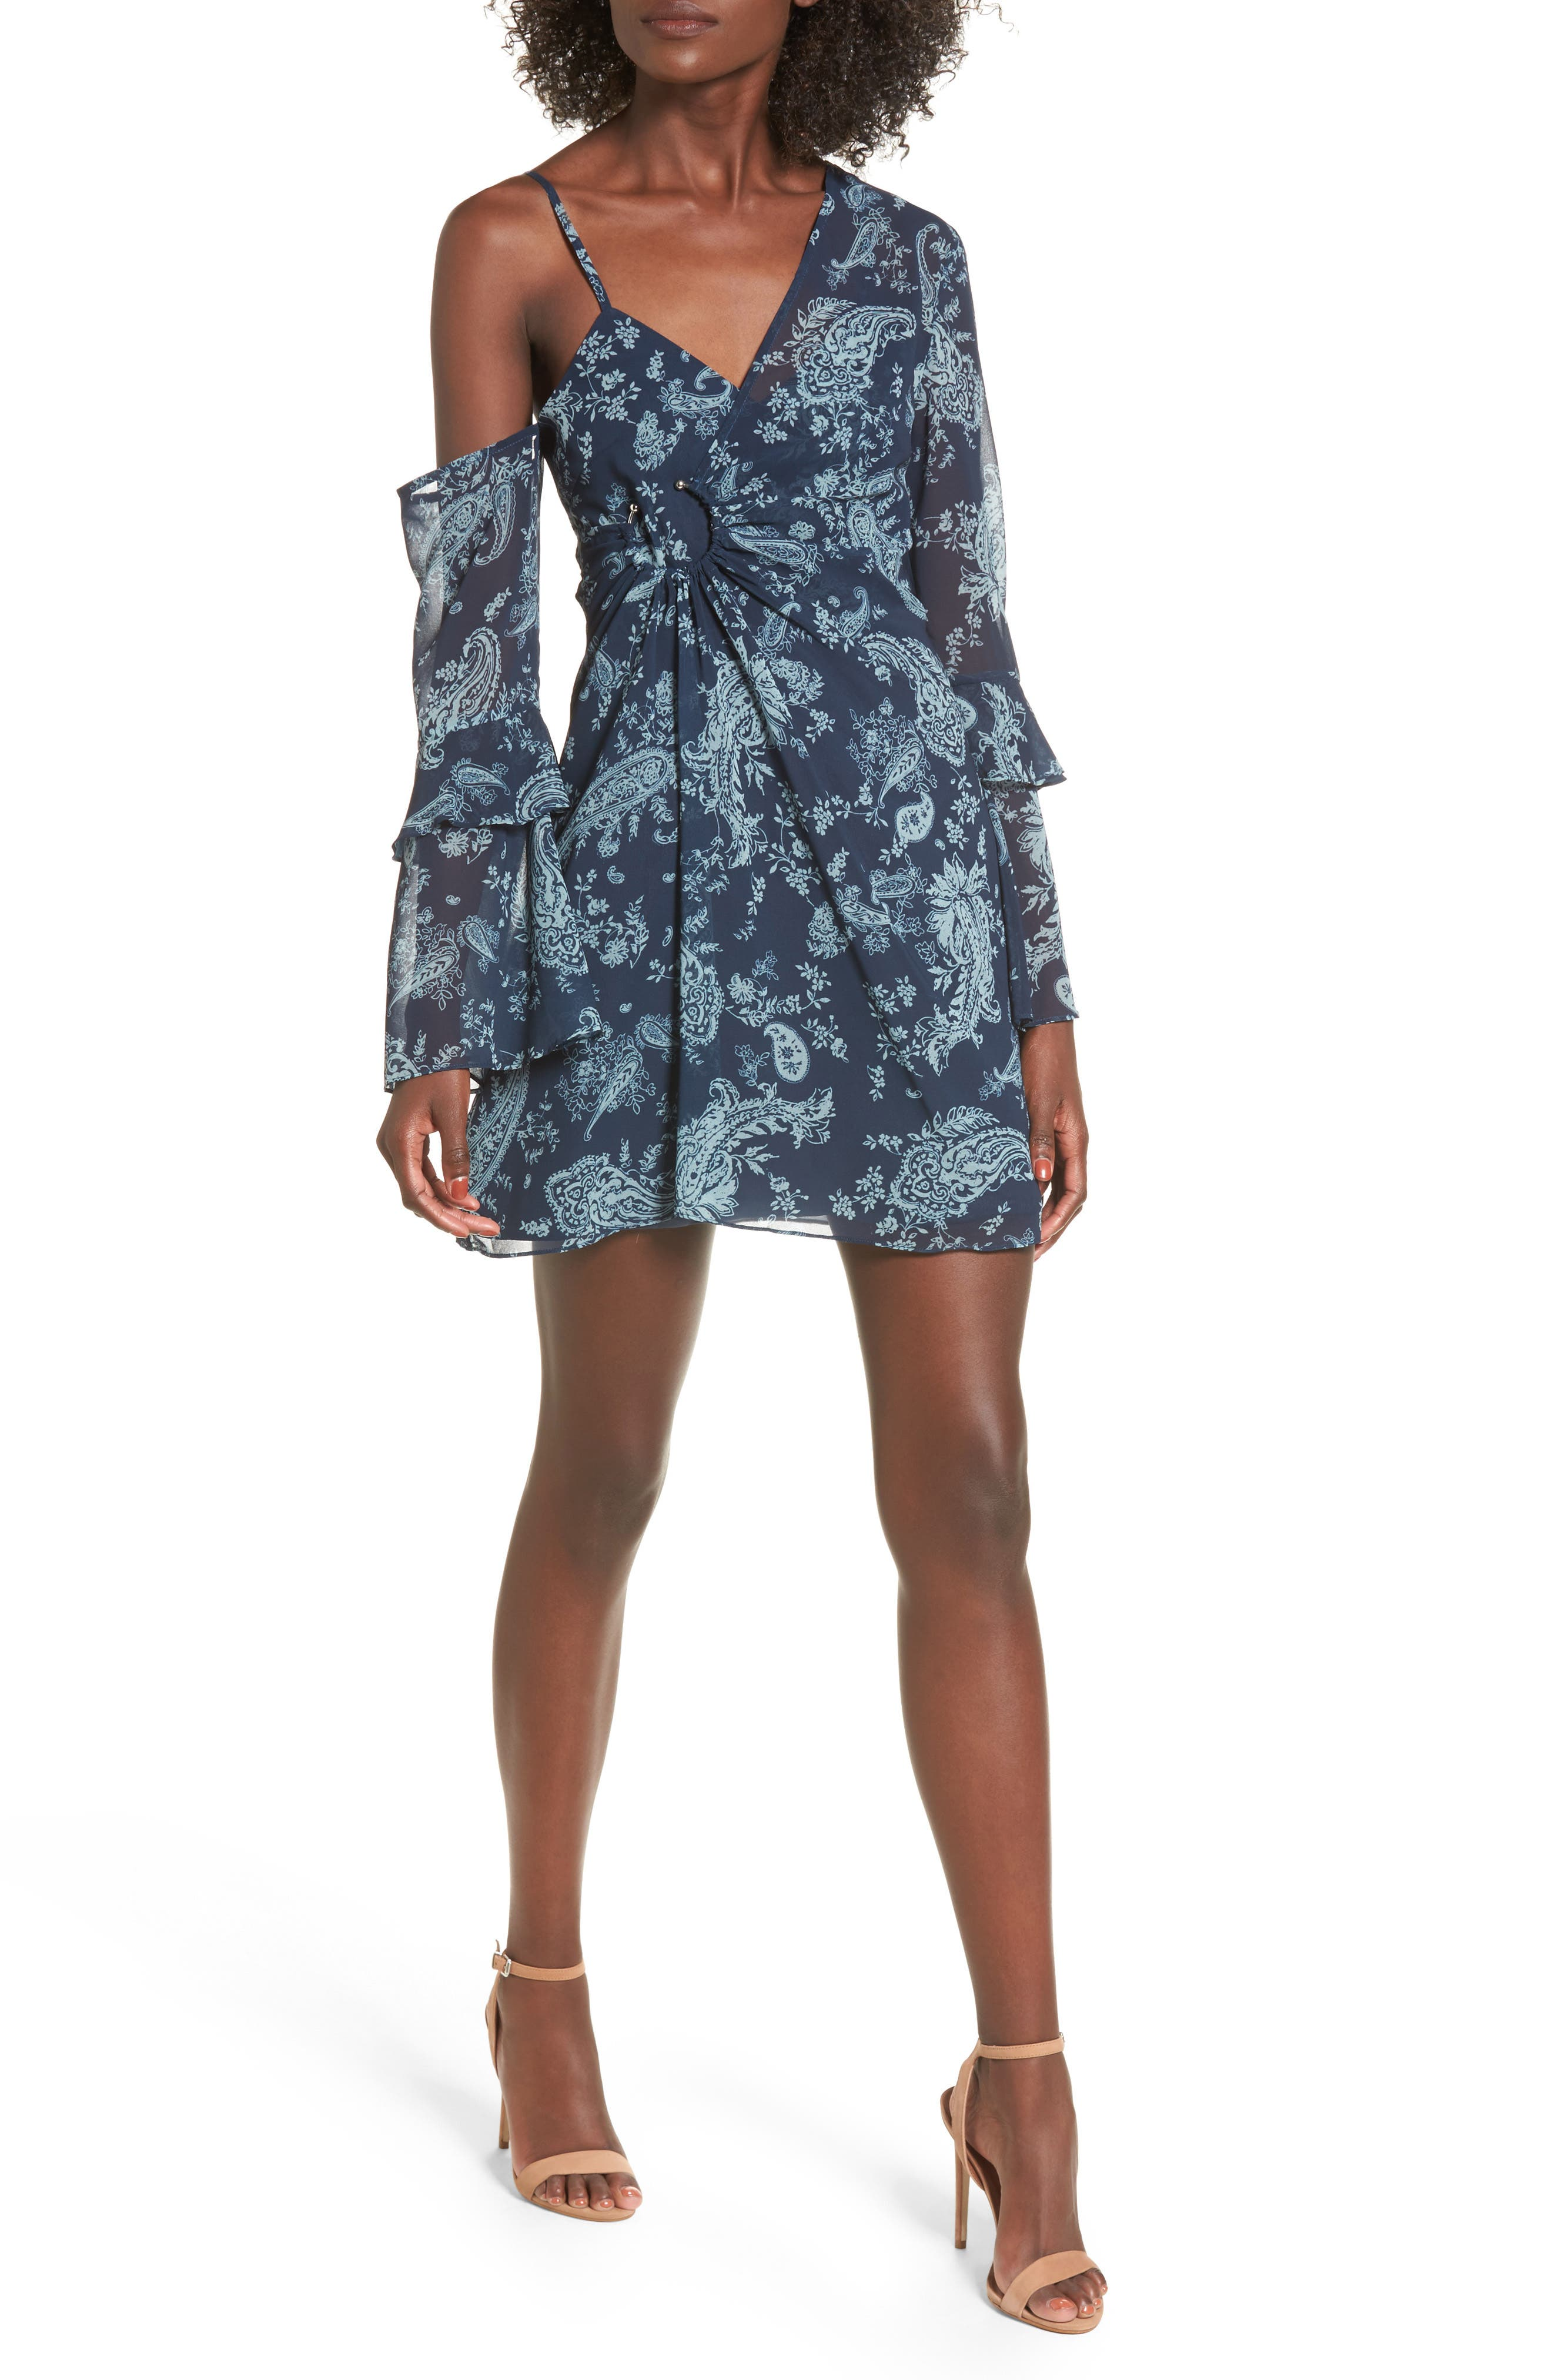 Go With It Minidress,                             Main thumbnail 1, color,                             401